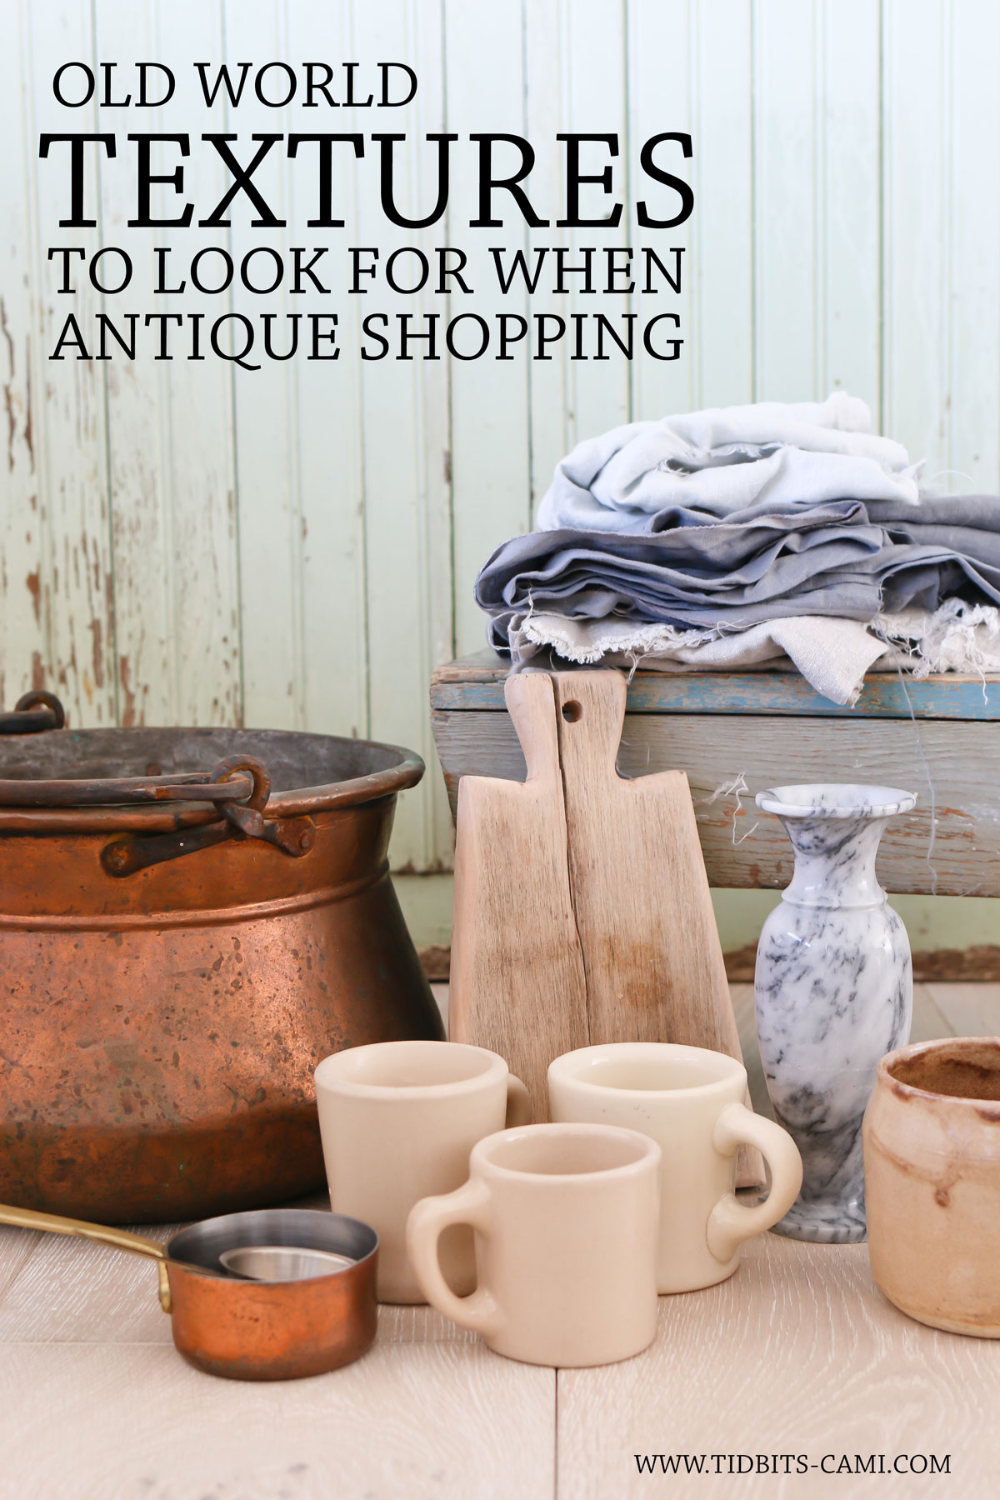 The way to my heart is antique shopping! I discovered a trend in the things I brought home and found 6 of my favorite old world antique textures to find. #antique #antiques #camitidbits #antiqueshopping #textures #hometextures #decor